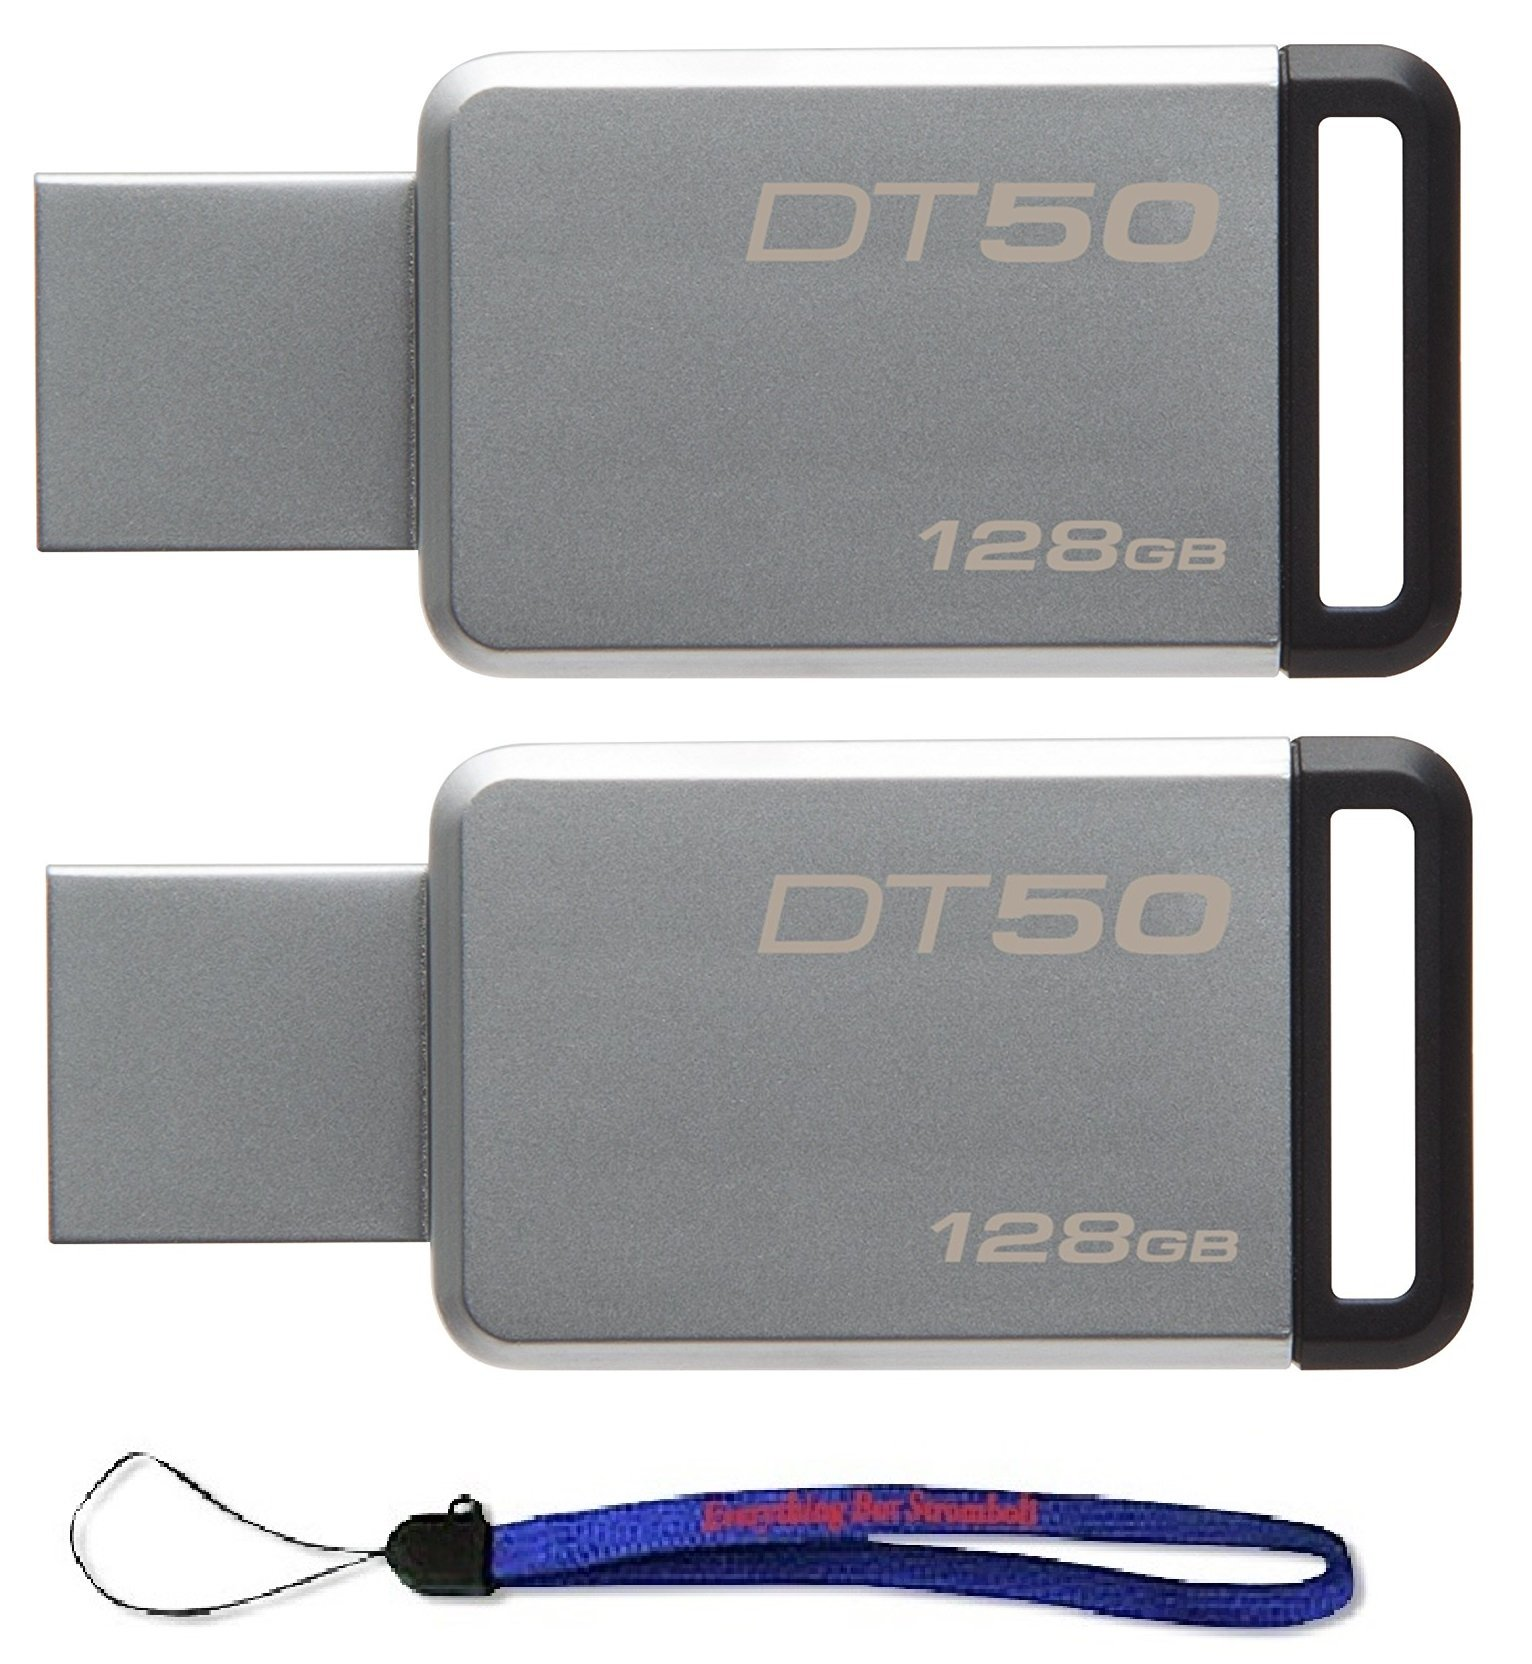 Kingston (TM) Digital 128GB (2 Pack) USB 3.0 Data Traveler 50 Flash Drive DT50, 110MB/s Read, 15MB/s Write Speed with Everything But Stromboli (TM) Lanyard (DT50/128GB)